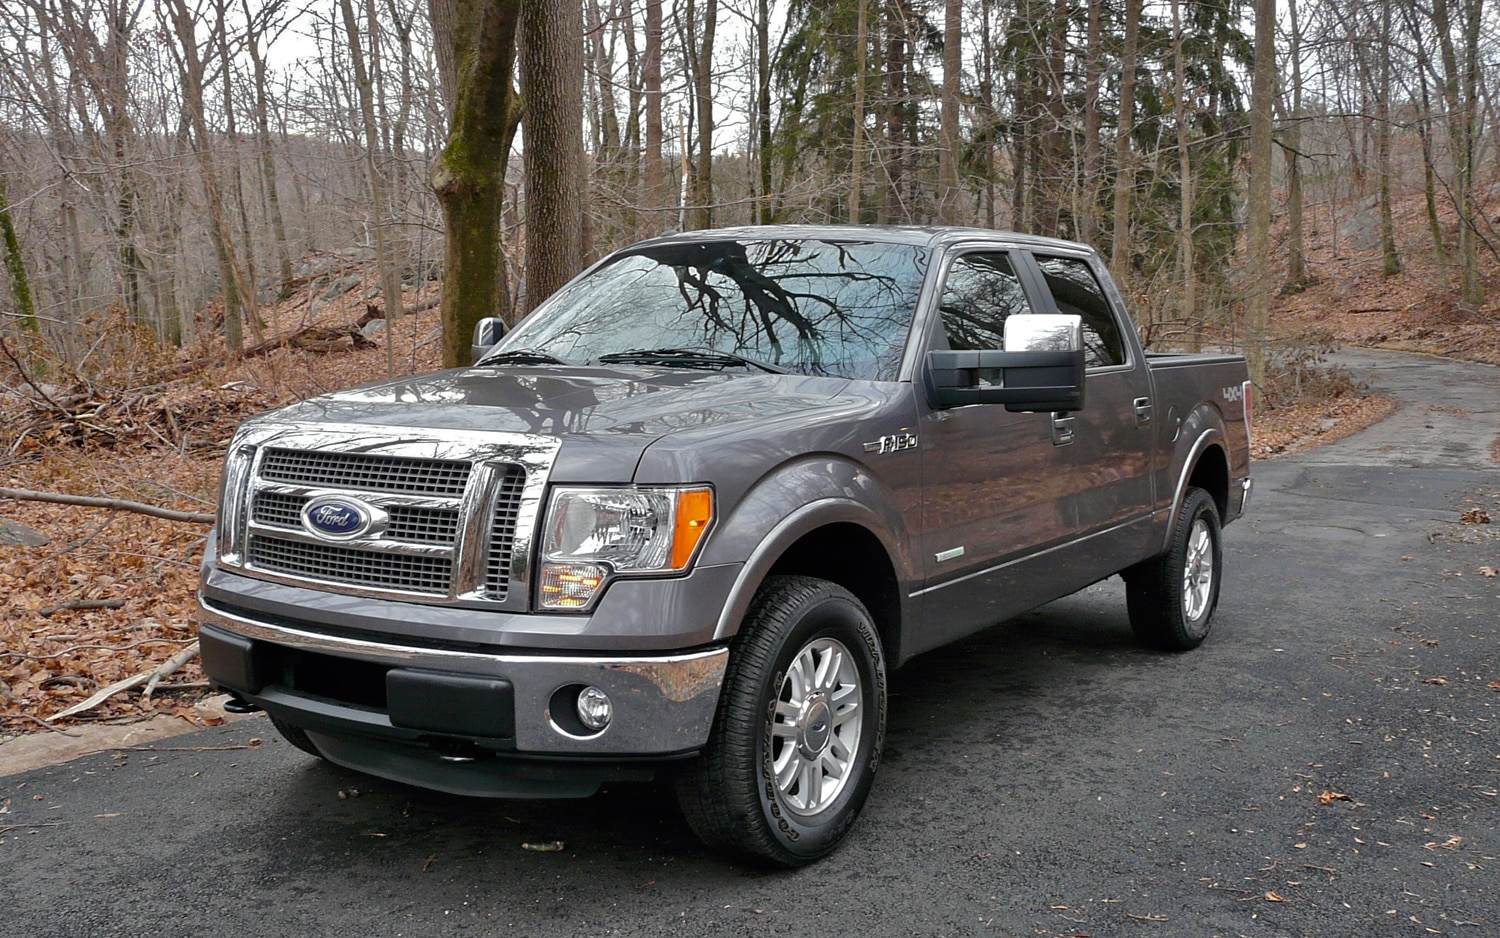 f150 ford ecoboost 150 v8 wheels expedition limited lariat side oem factory 2000 automobile magazine left grill rims 6x135 ranch